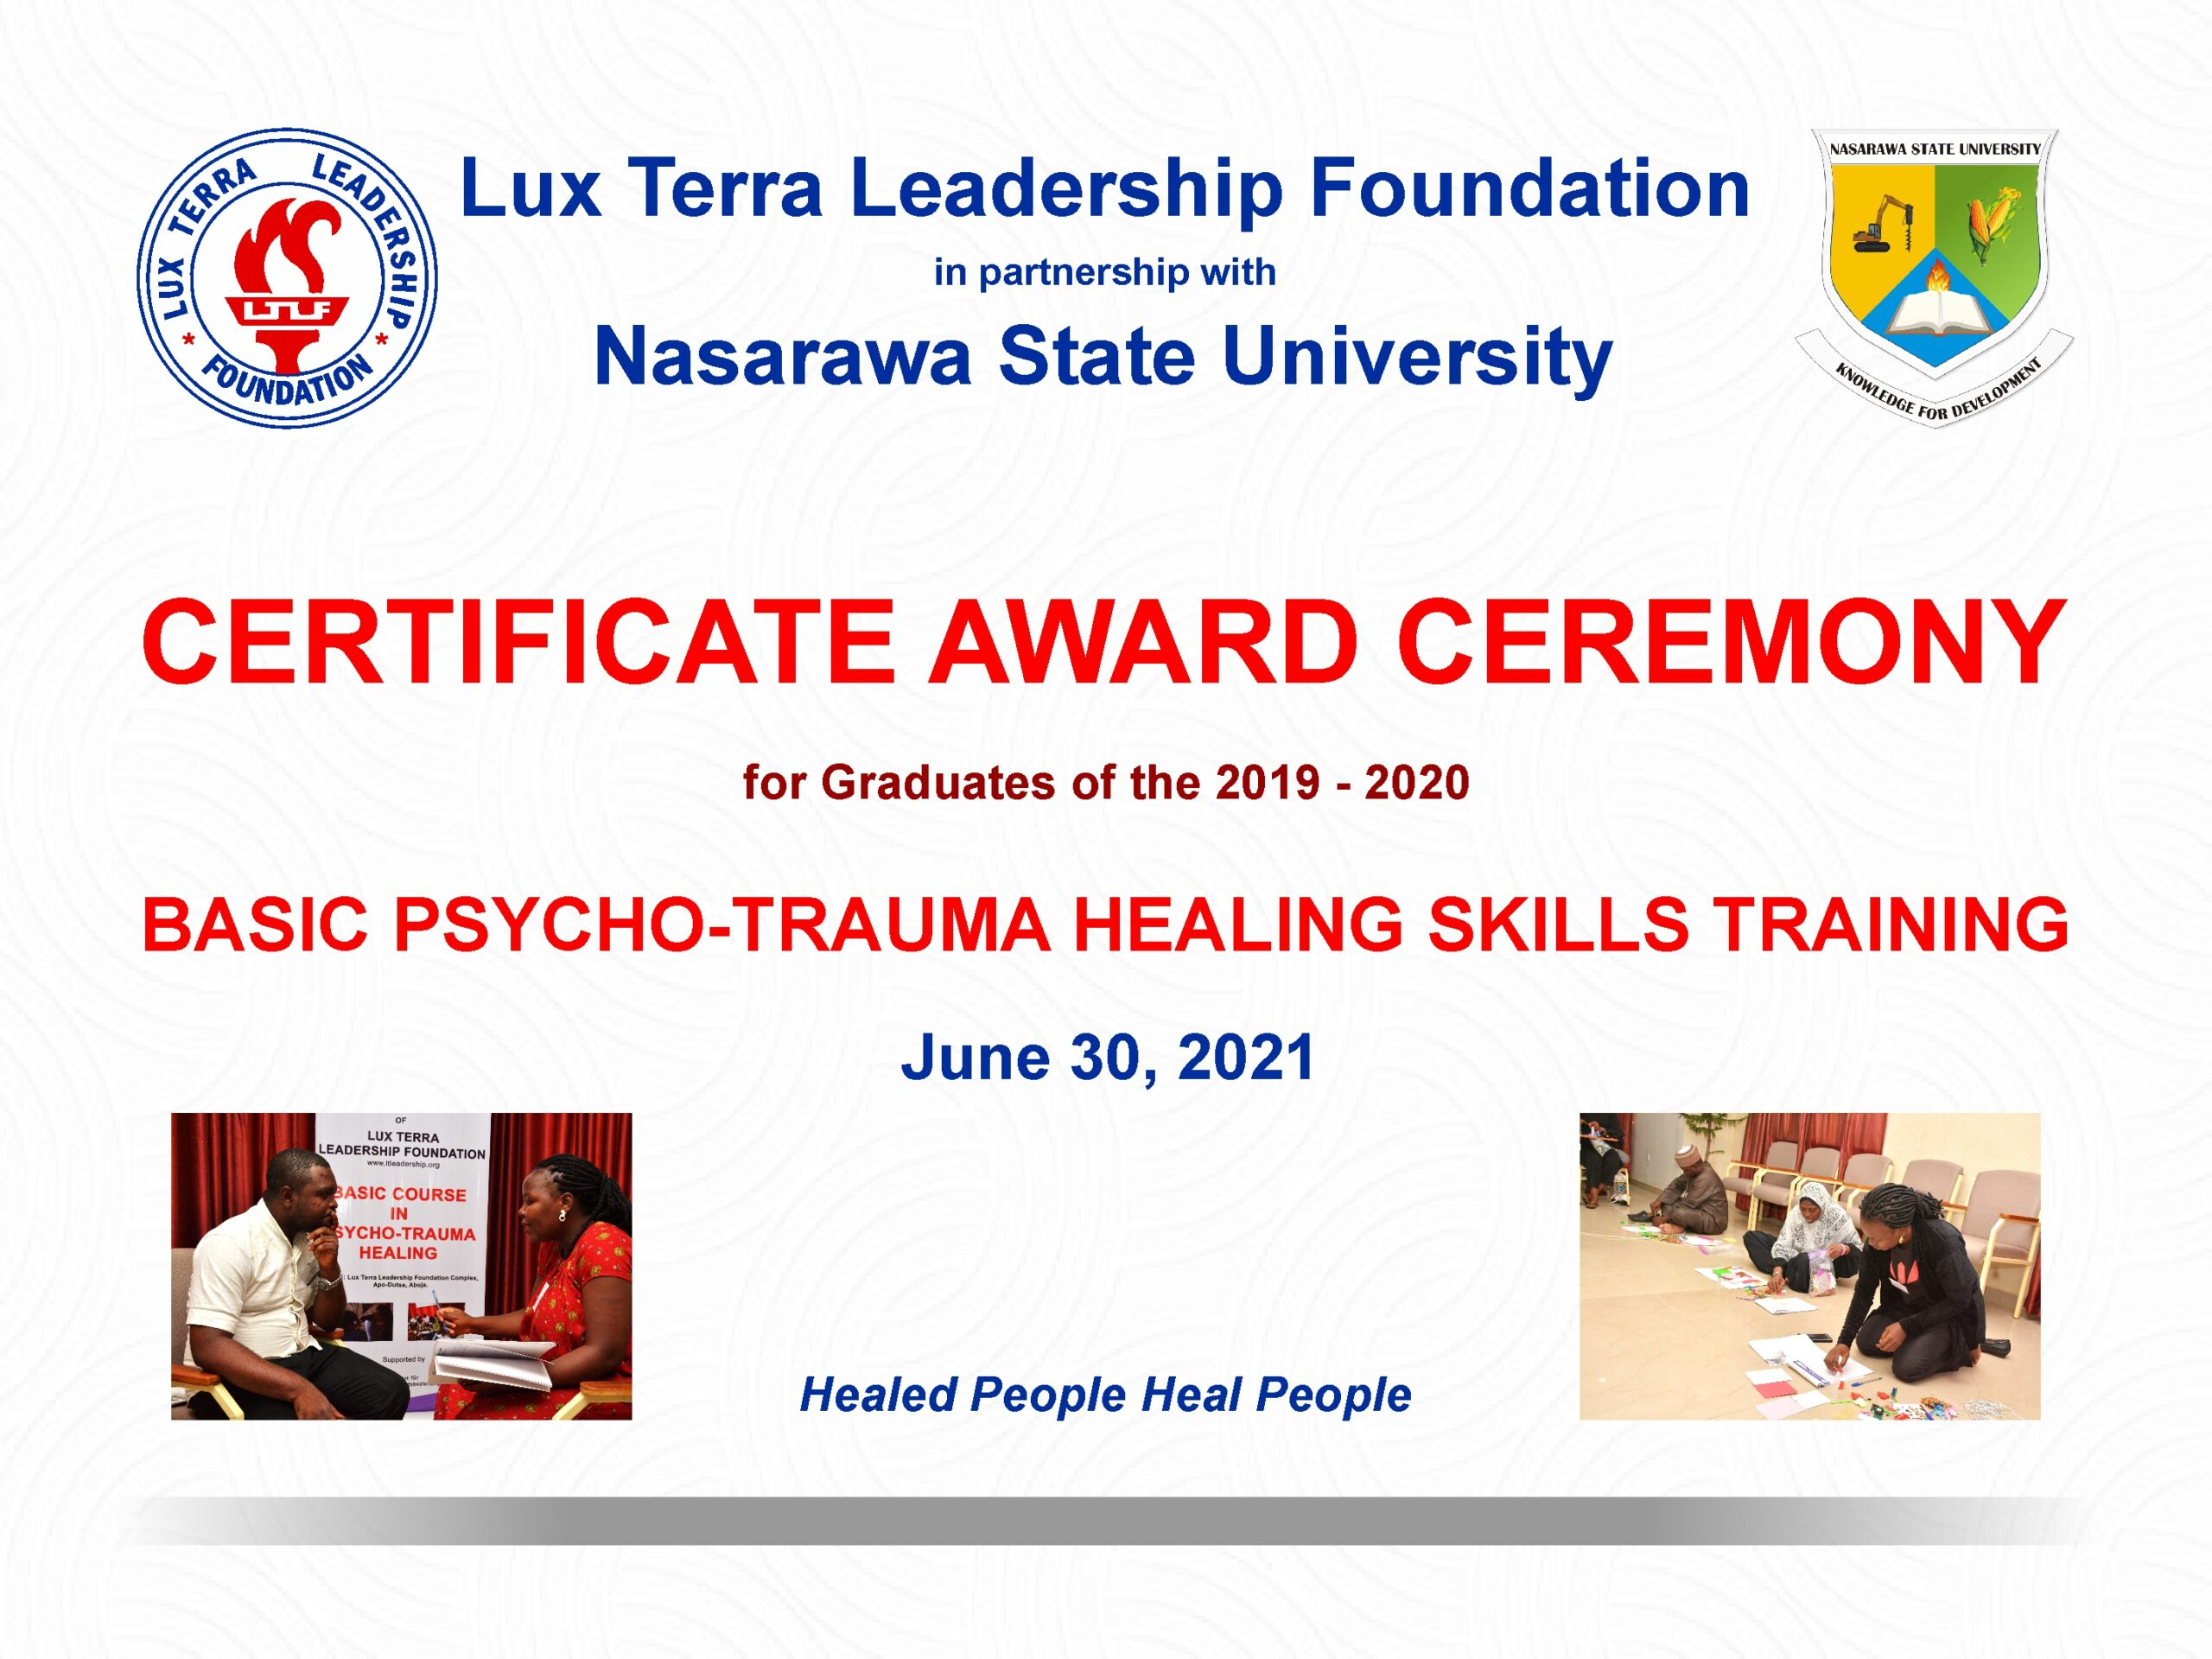 LUX TERRA HOLDS 2ND CERTIFICATE AWARD CEREMONY FOR GRADUATES OF ITS BASIC PSYCHO-TRAUMA COURSE